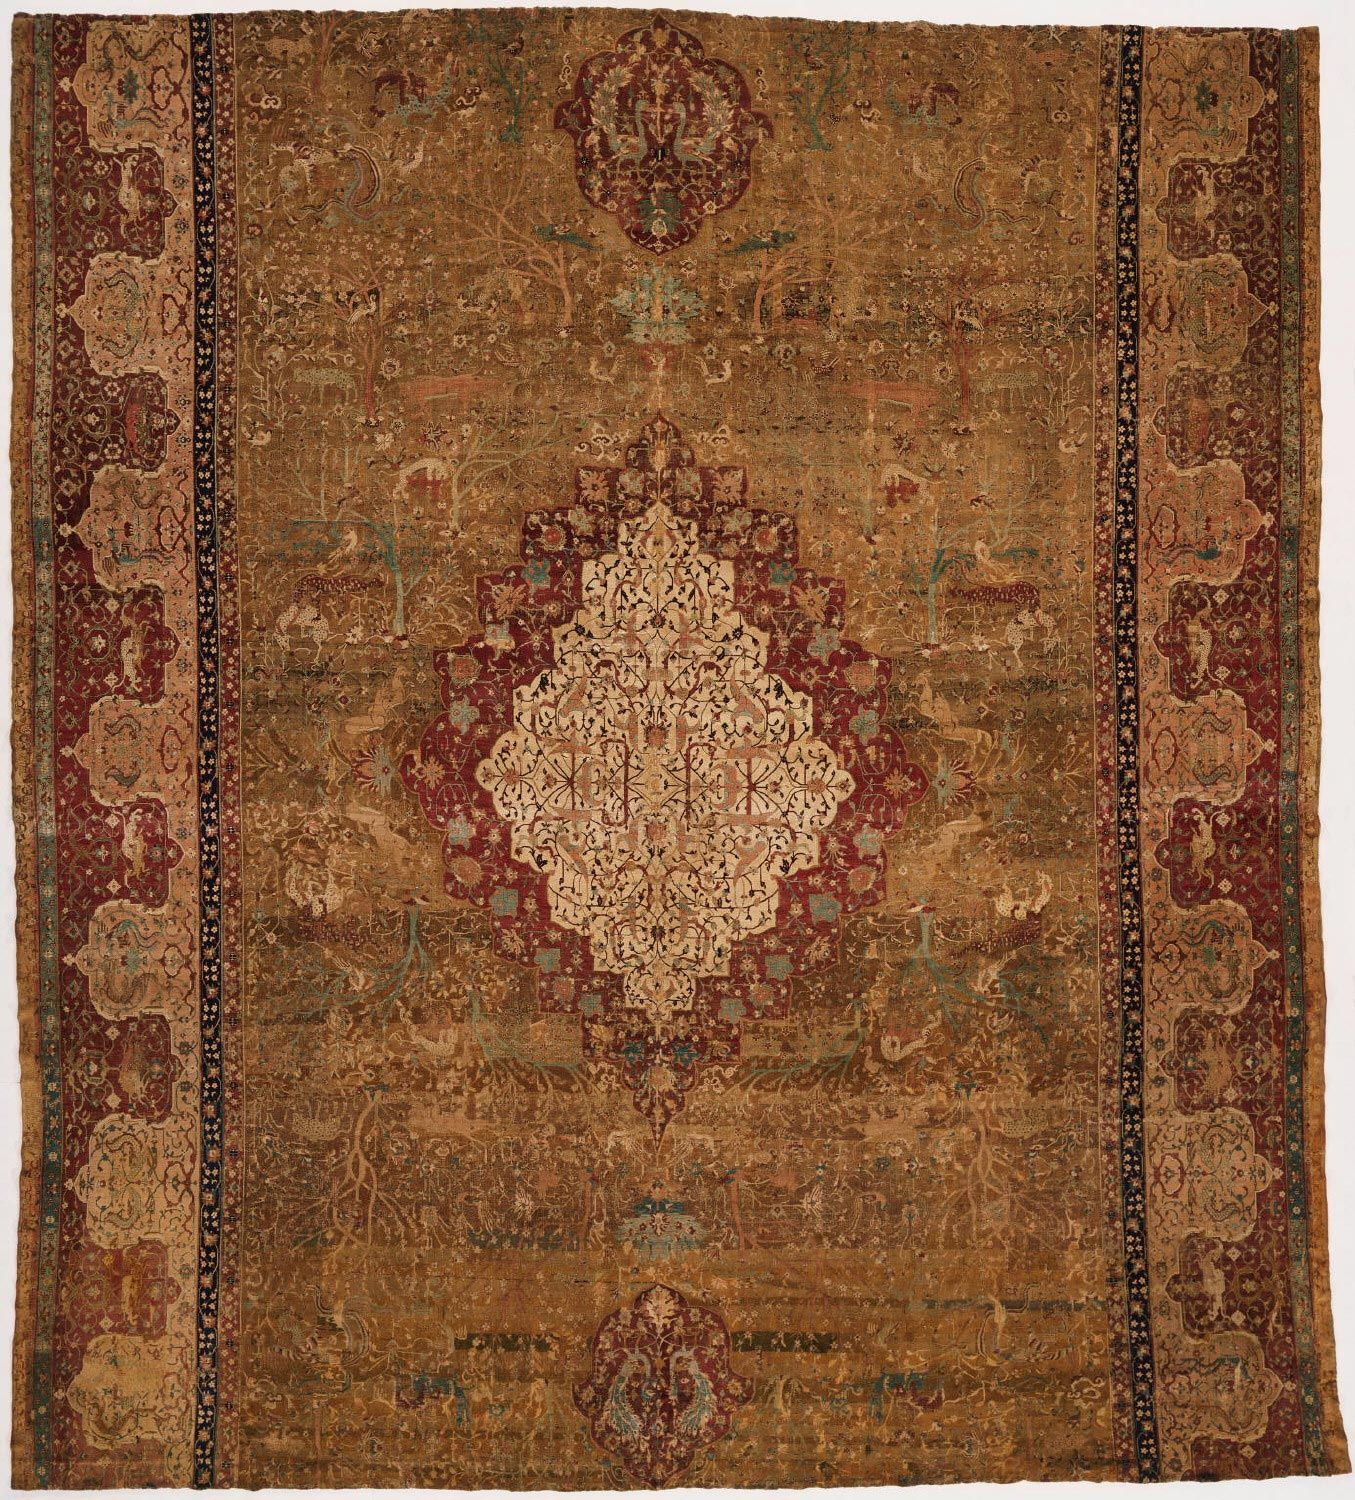 Pin On Hand Made Carpets